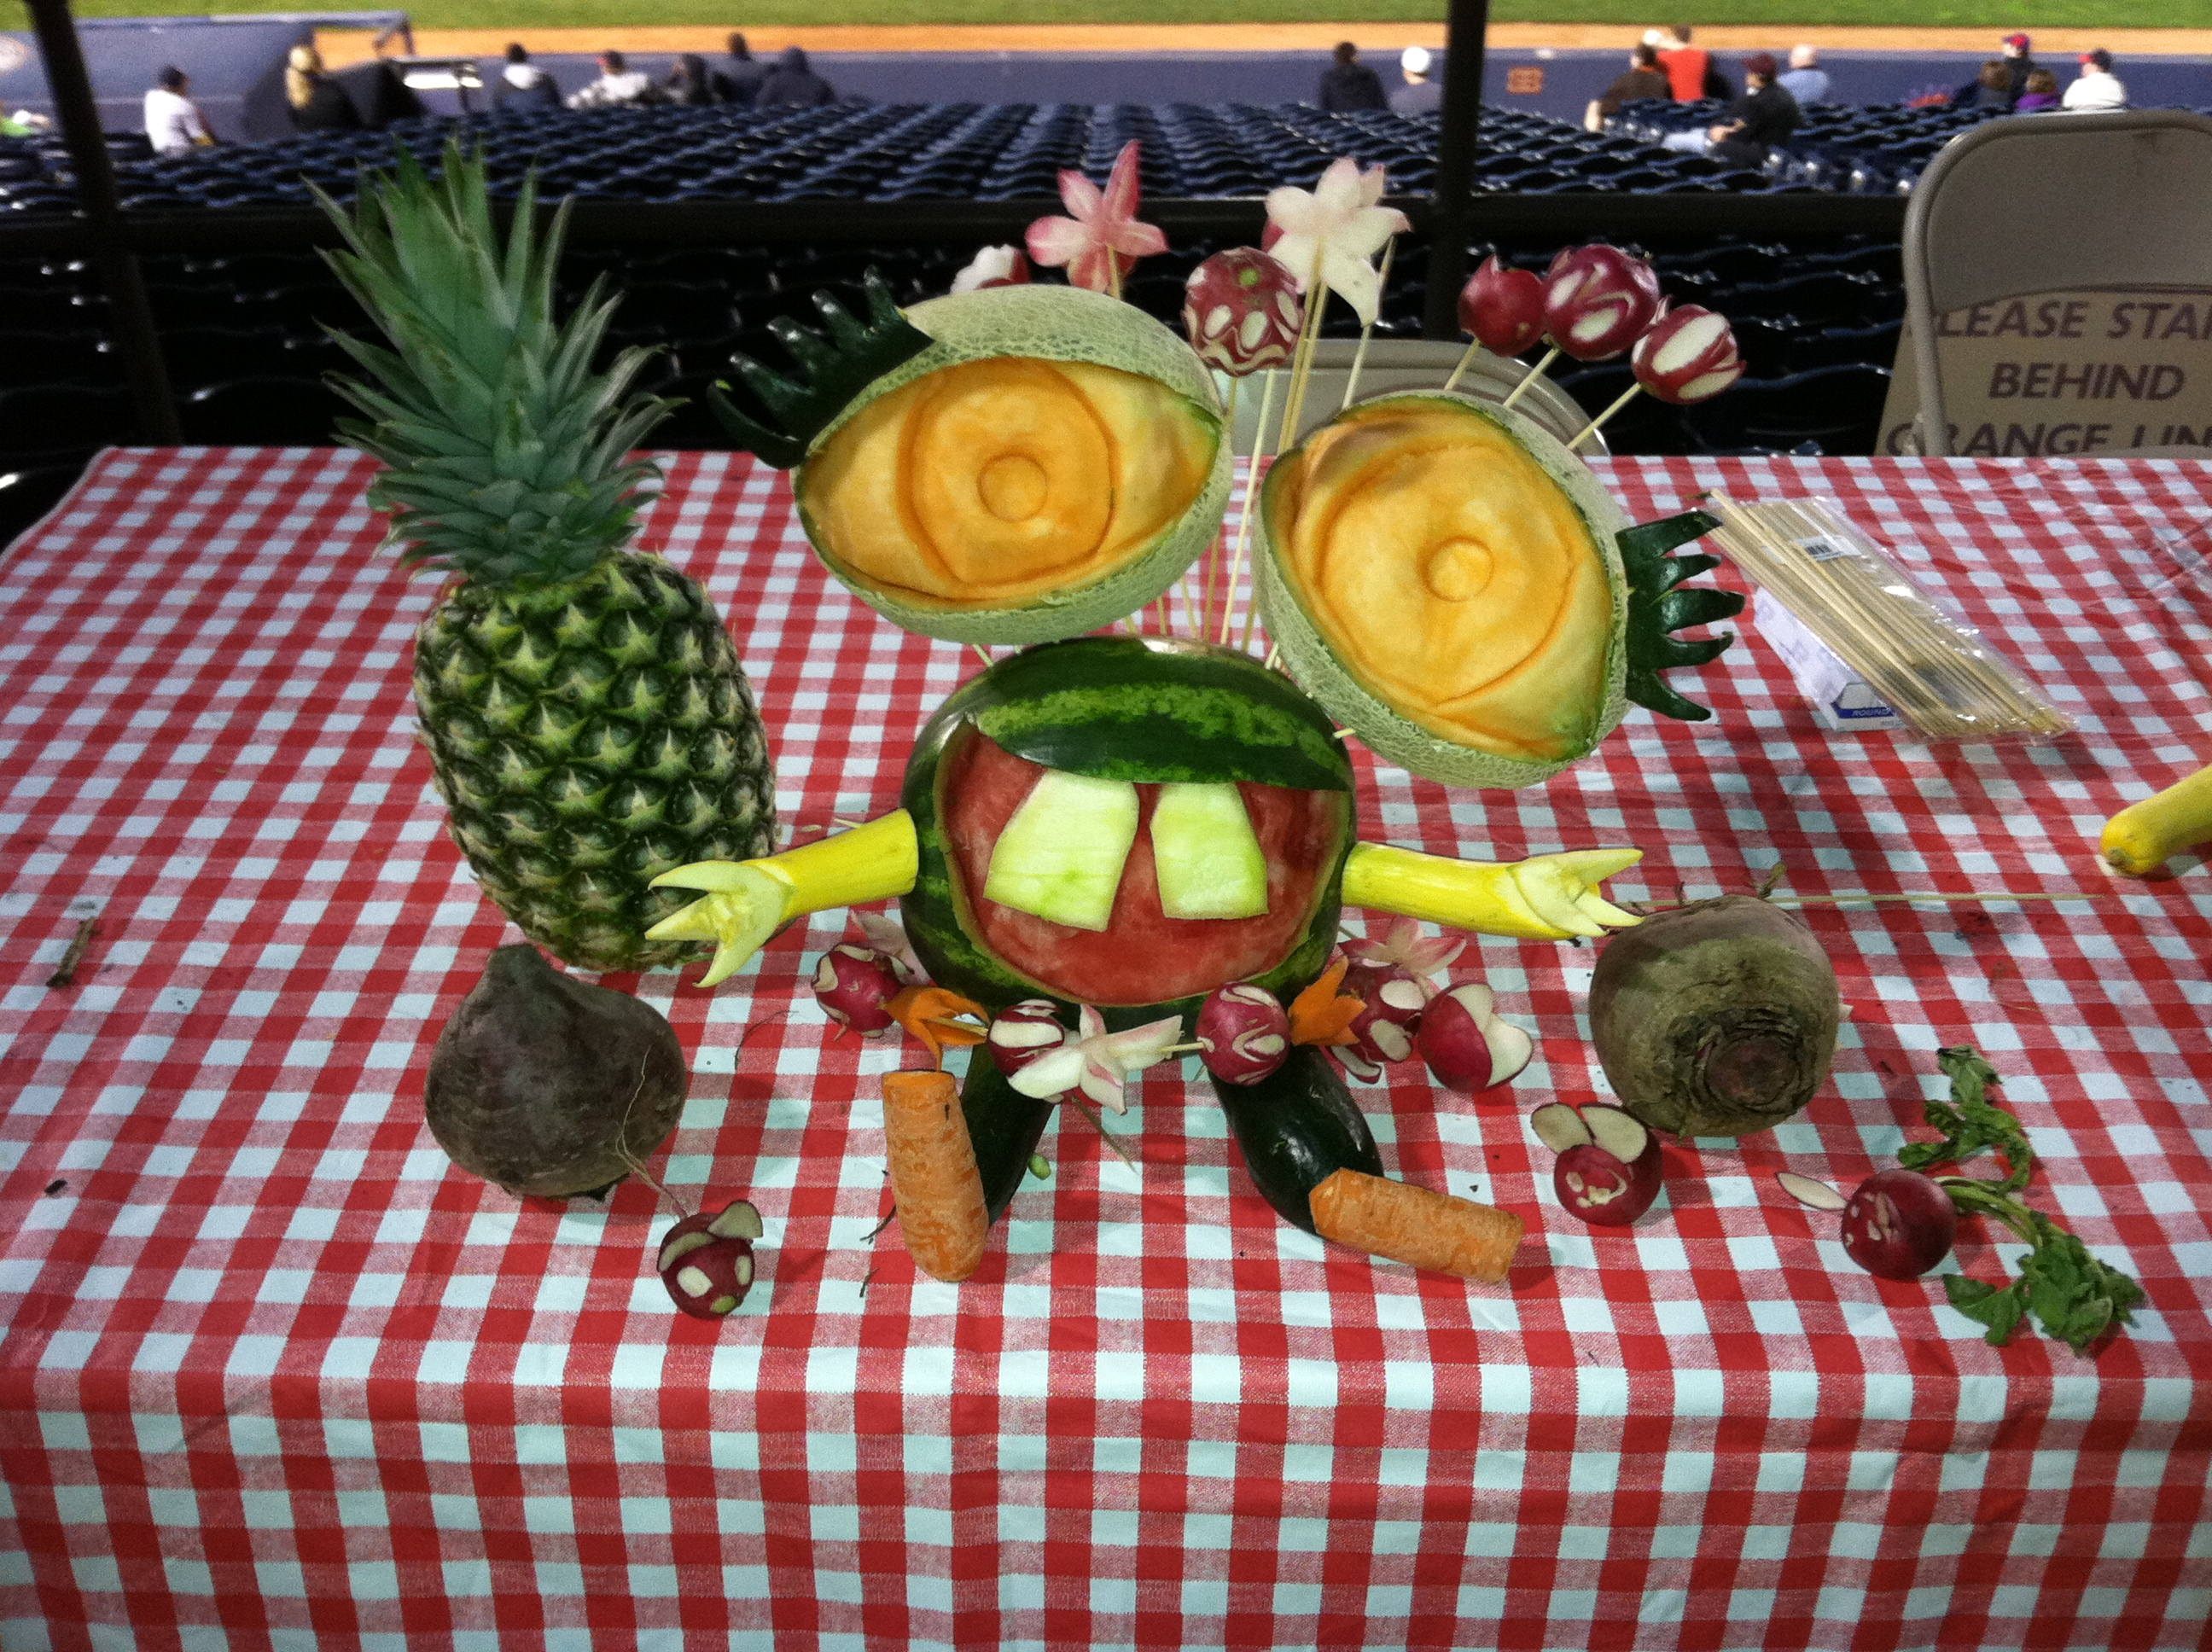 Vegetable carving for competition - Veggie Carving Winner